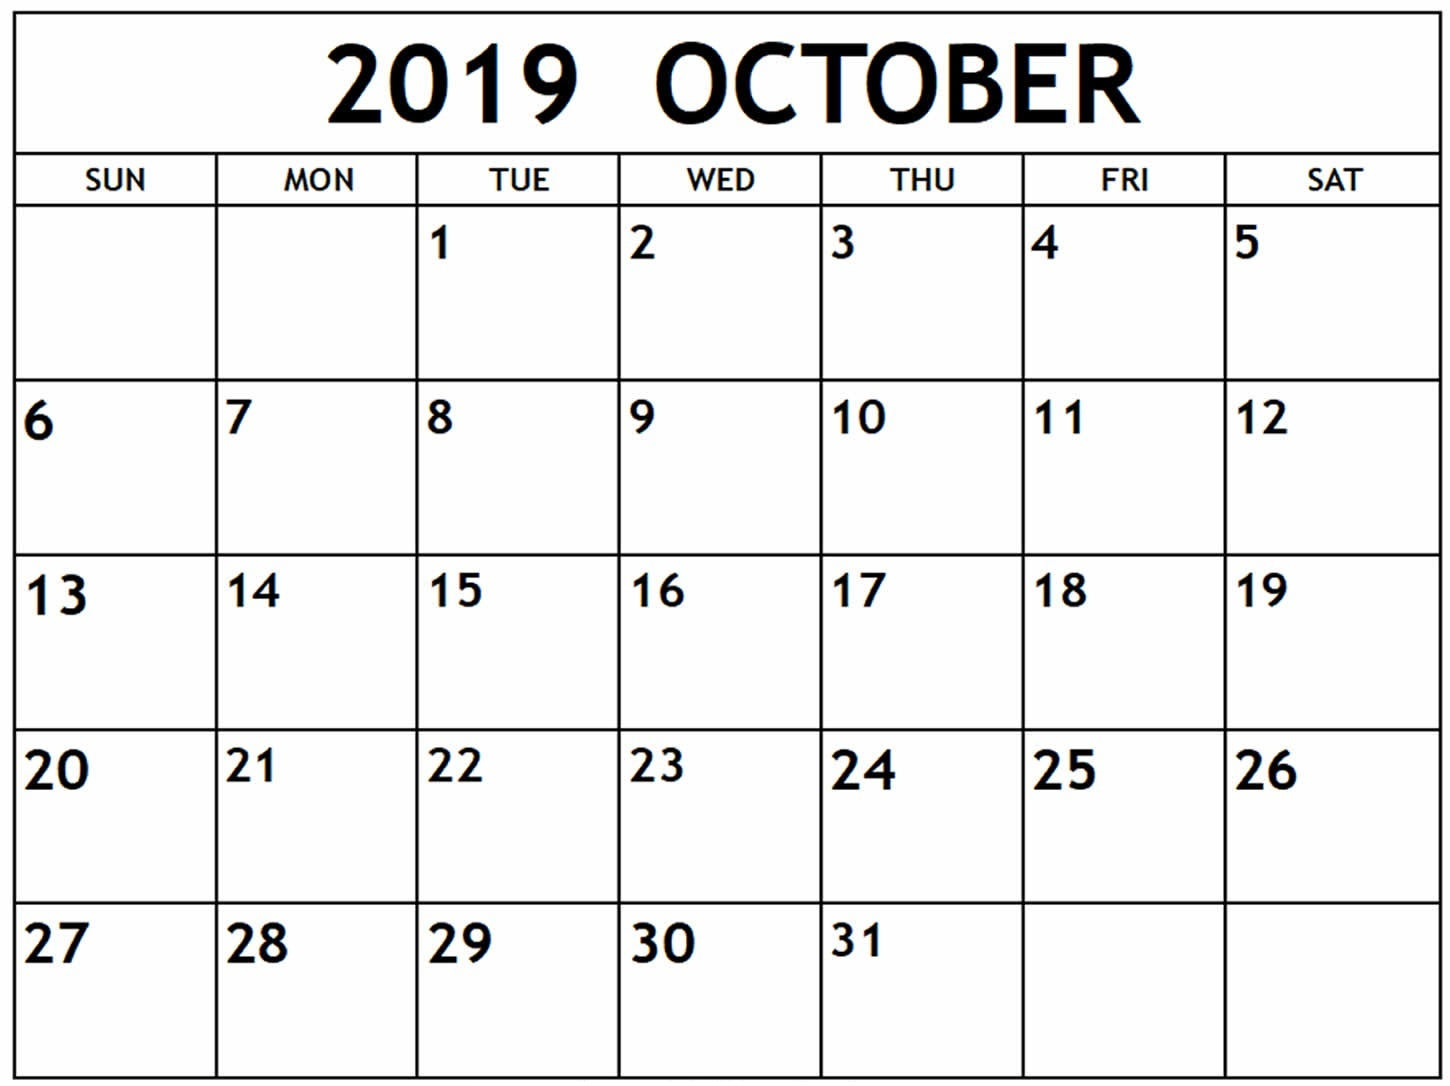 008 Blank Calendar Template Word October Printable Top Ideas pertaining to Small Monthly Calendar Printable 2020 October